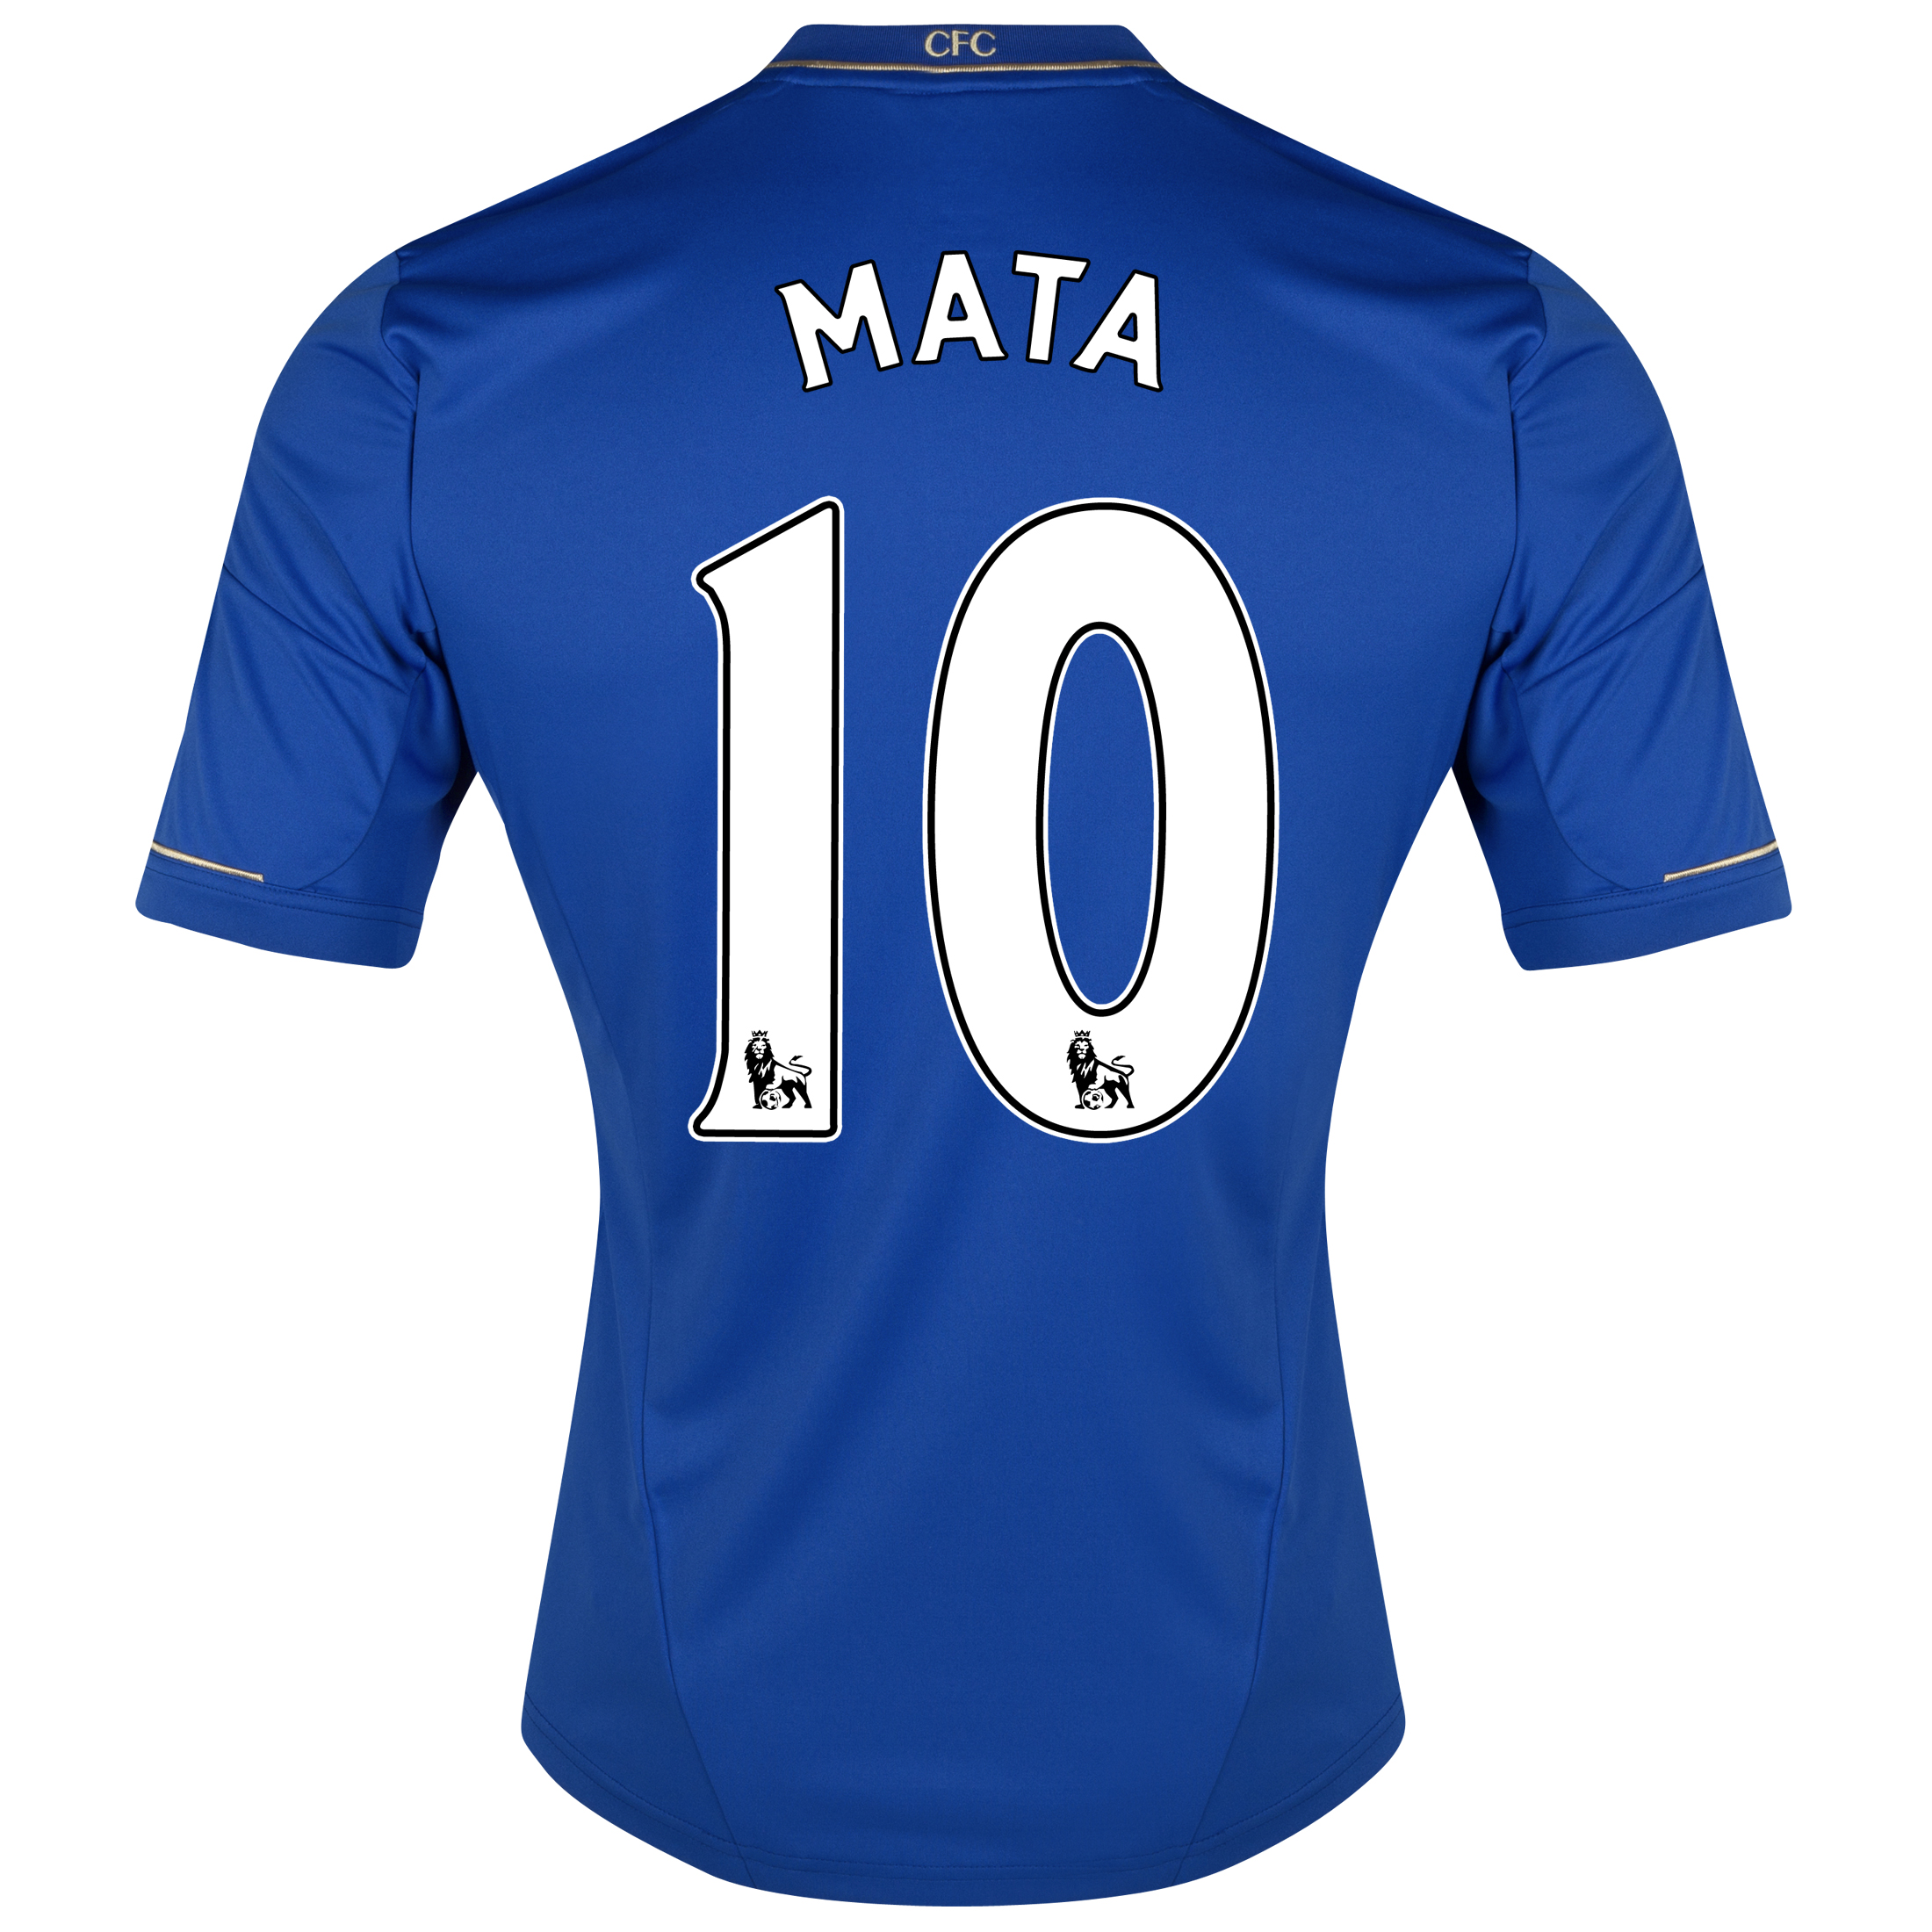 Chelsea Home Shirt 2012/13 with Mata 10 printing